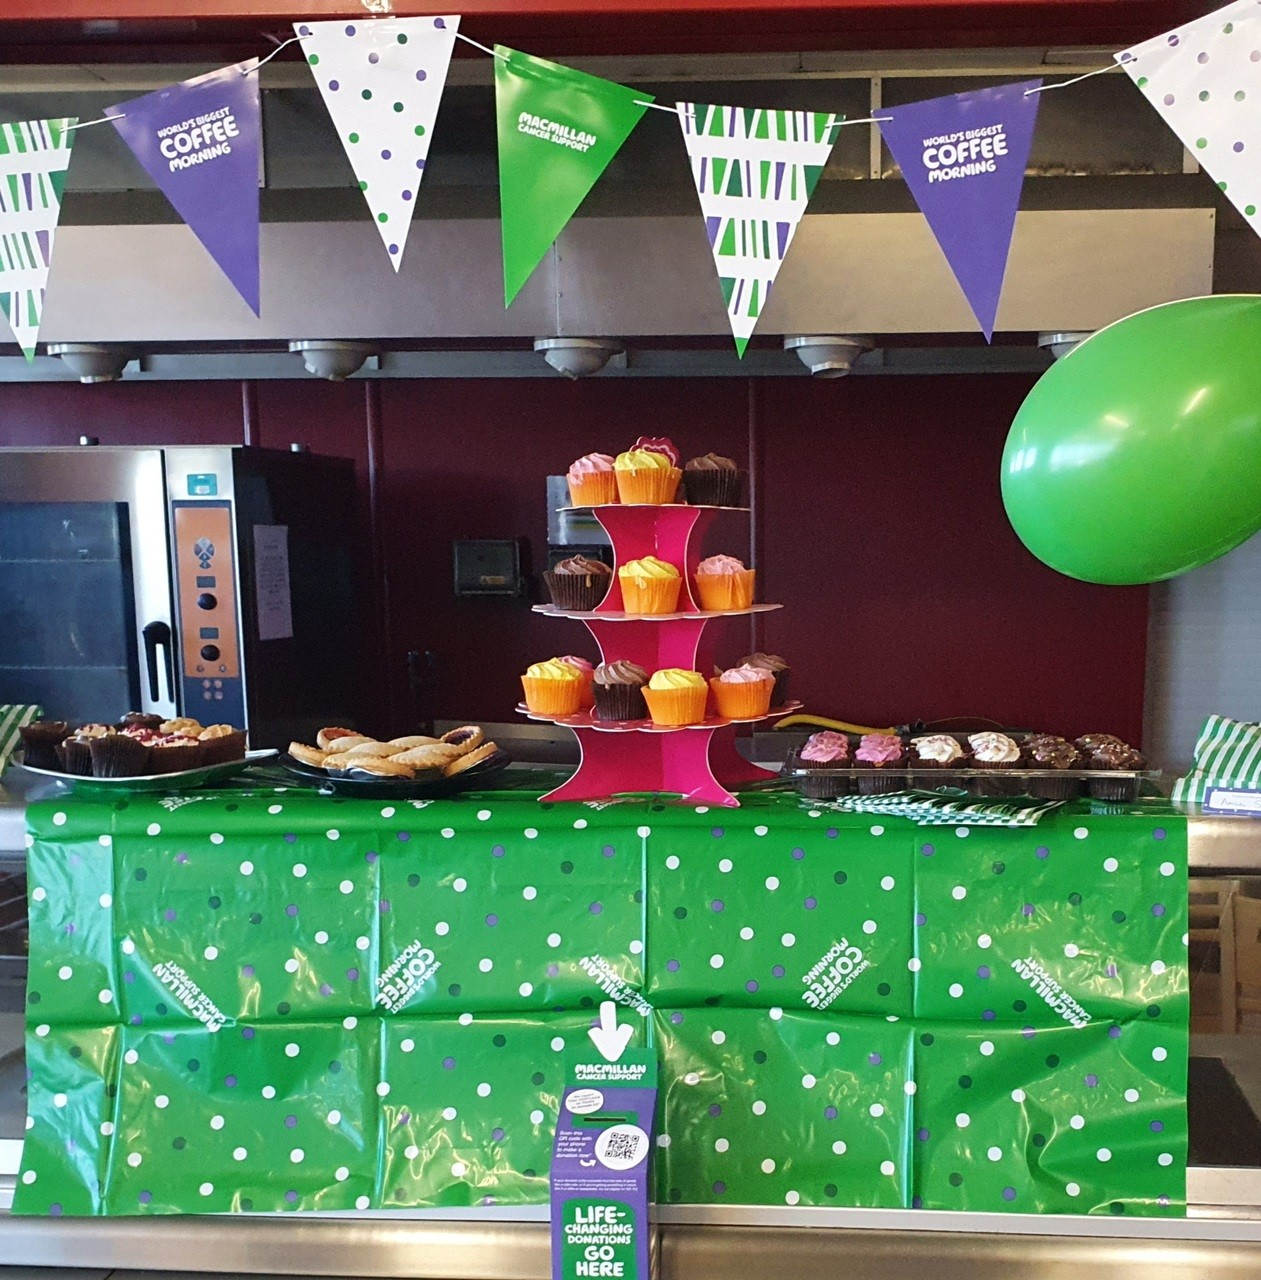 Macmillan Colleague Coffee morning | Asda Brierley Hill